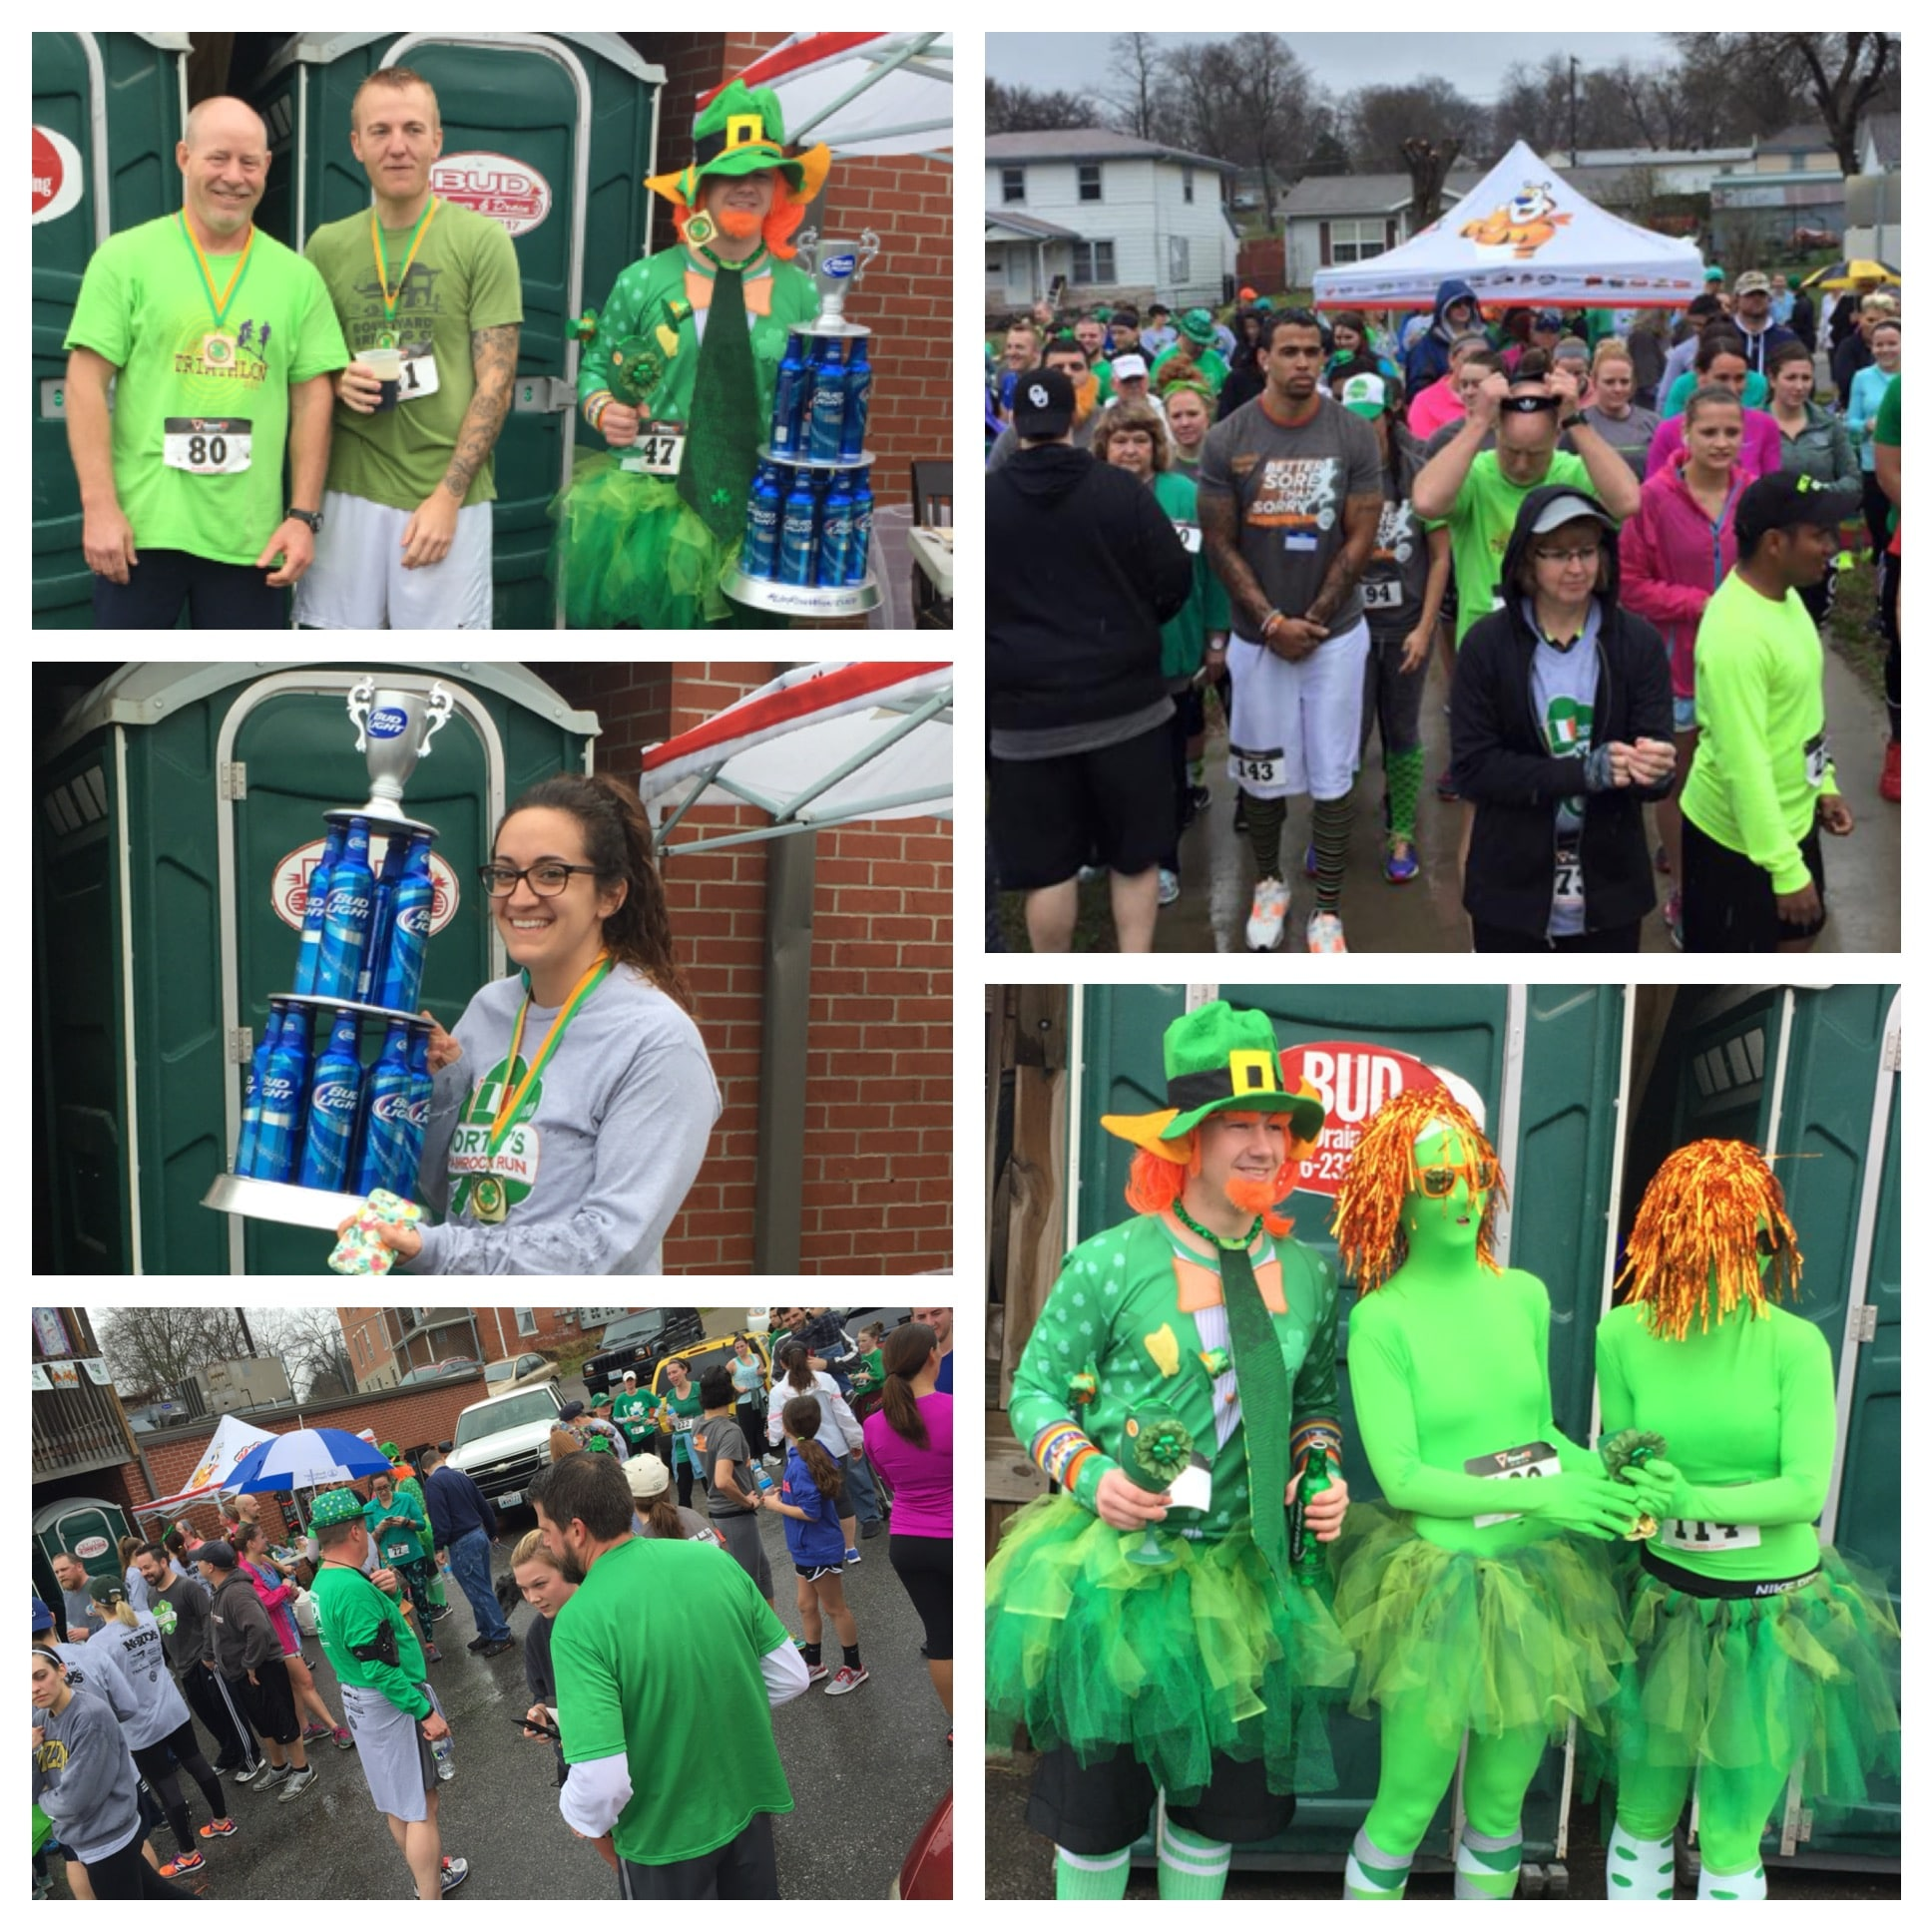 A collection of photos showing people participating in a St. Patrick's Day event